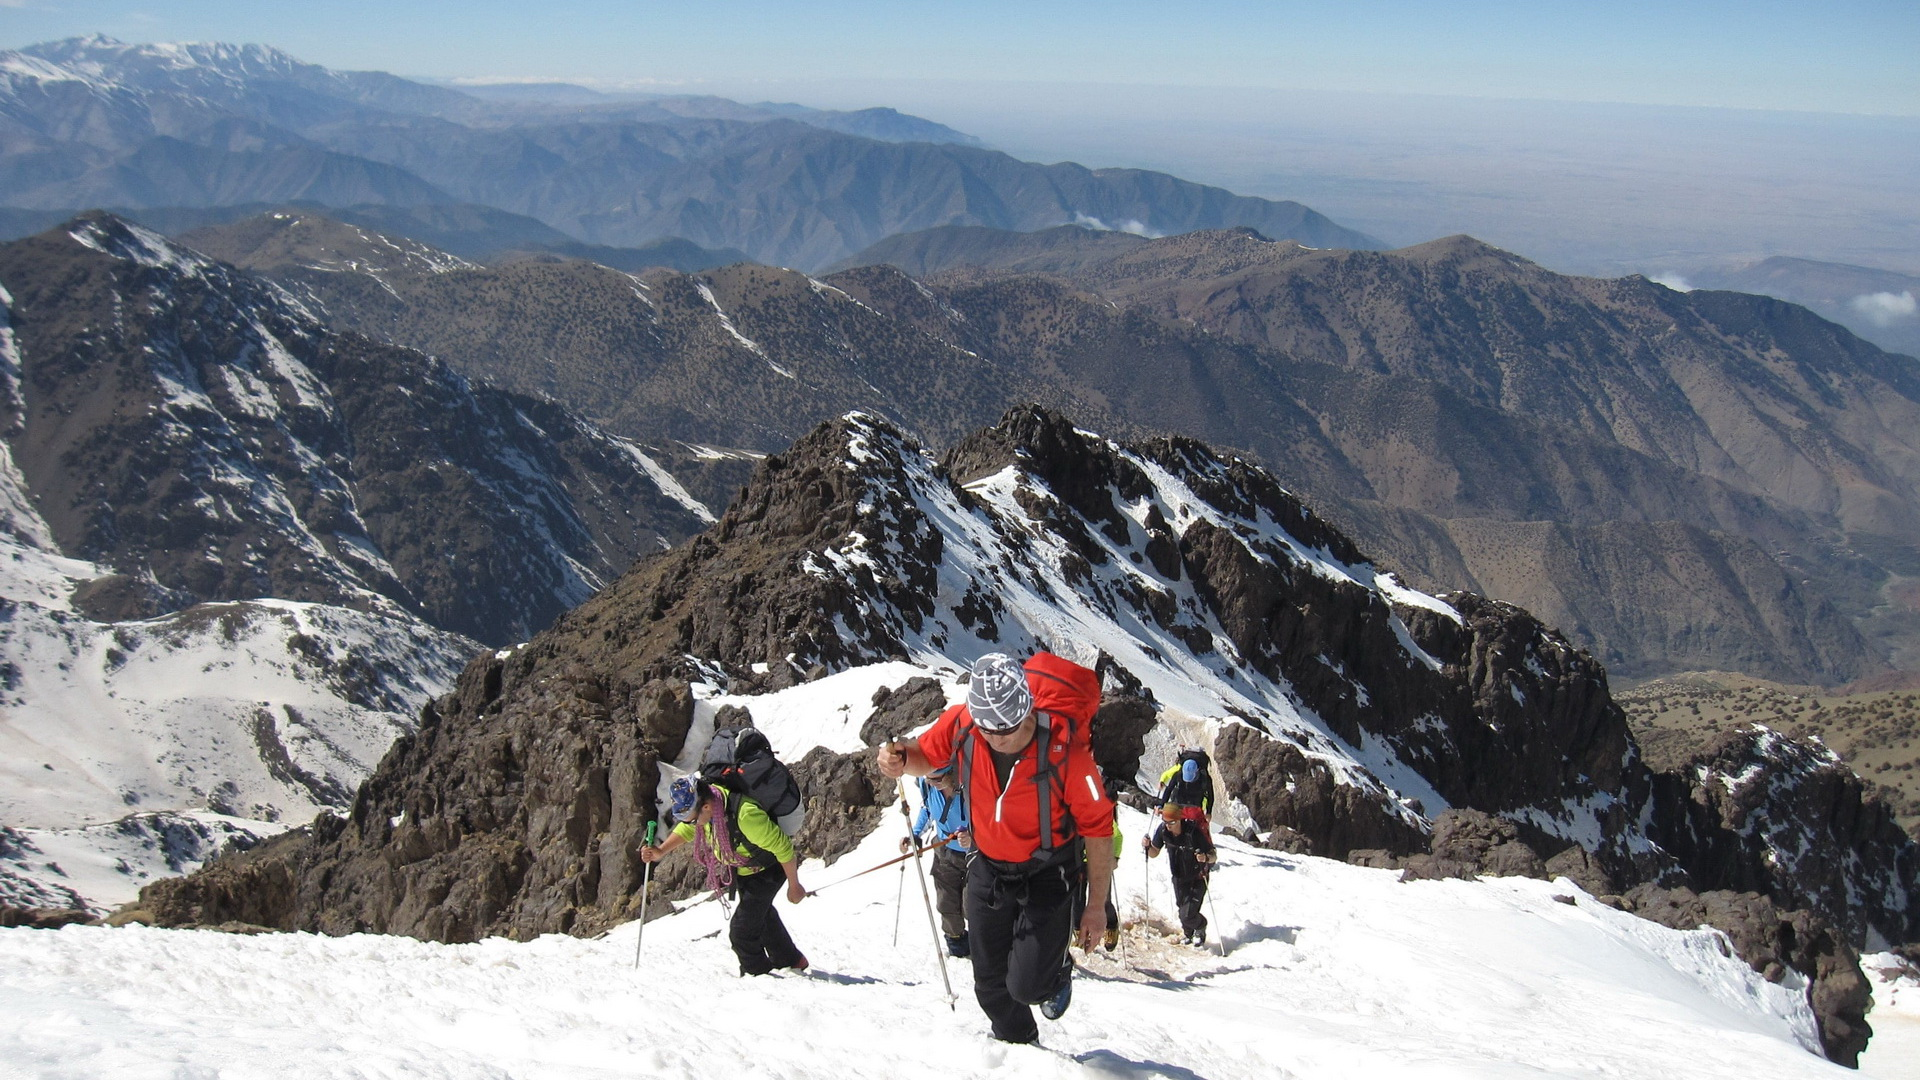 pathfinders treks - skiing in toubkal